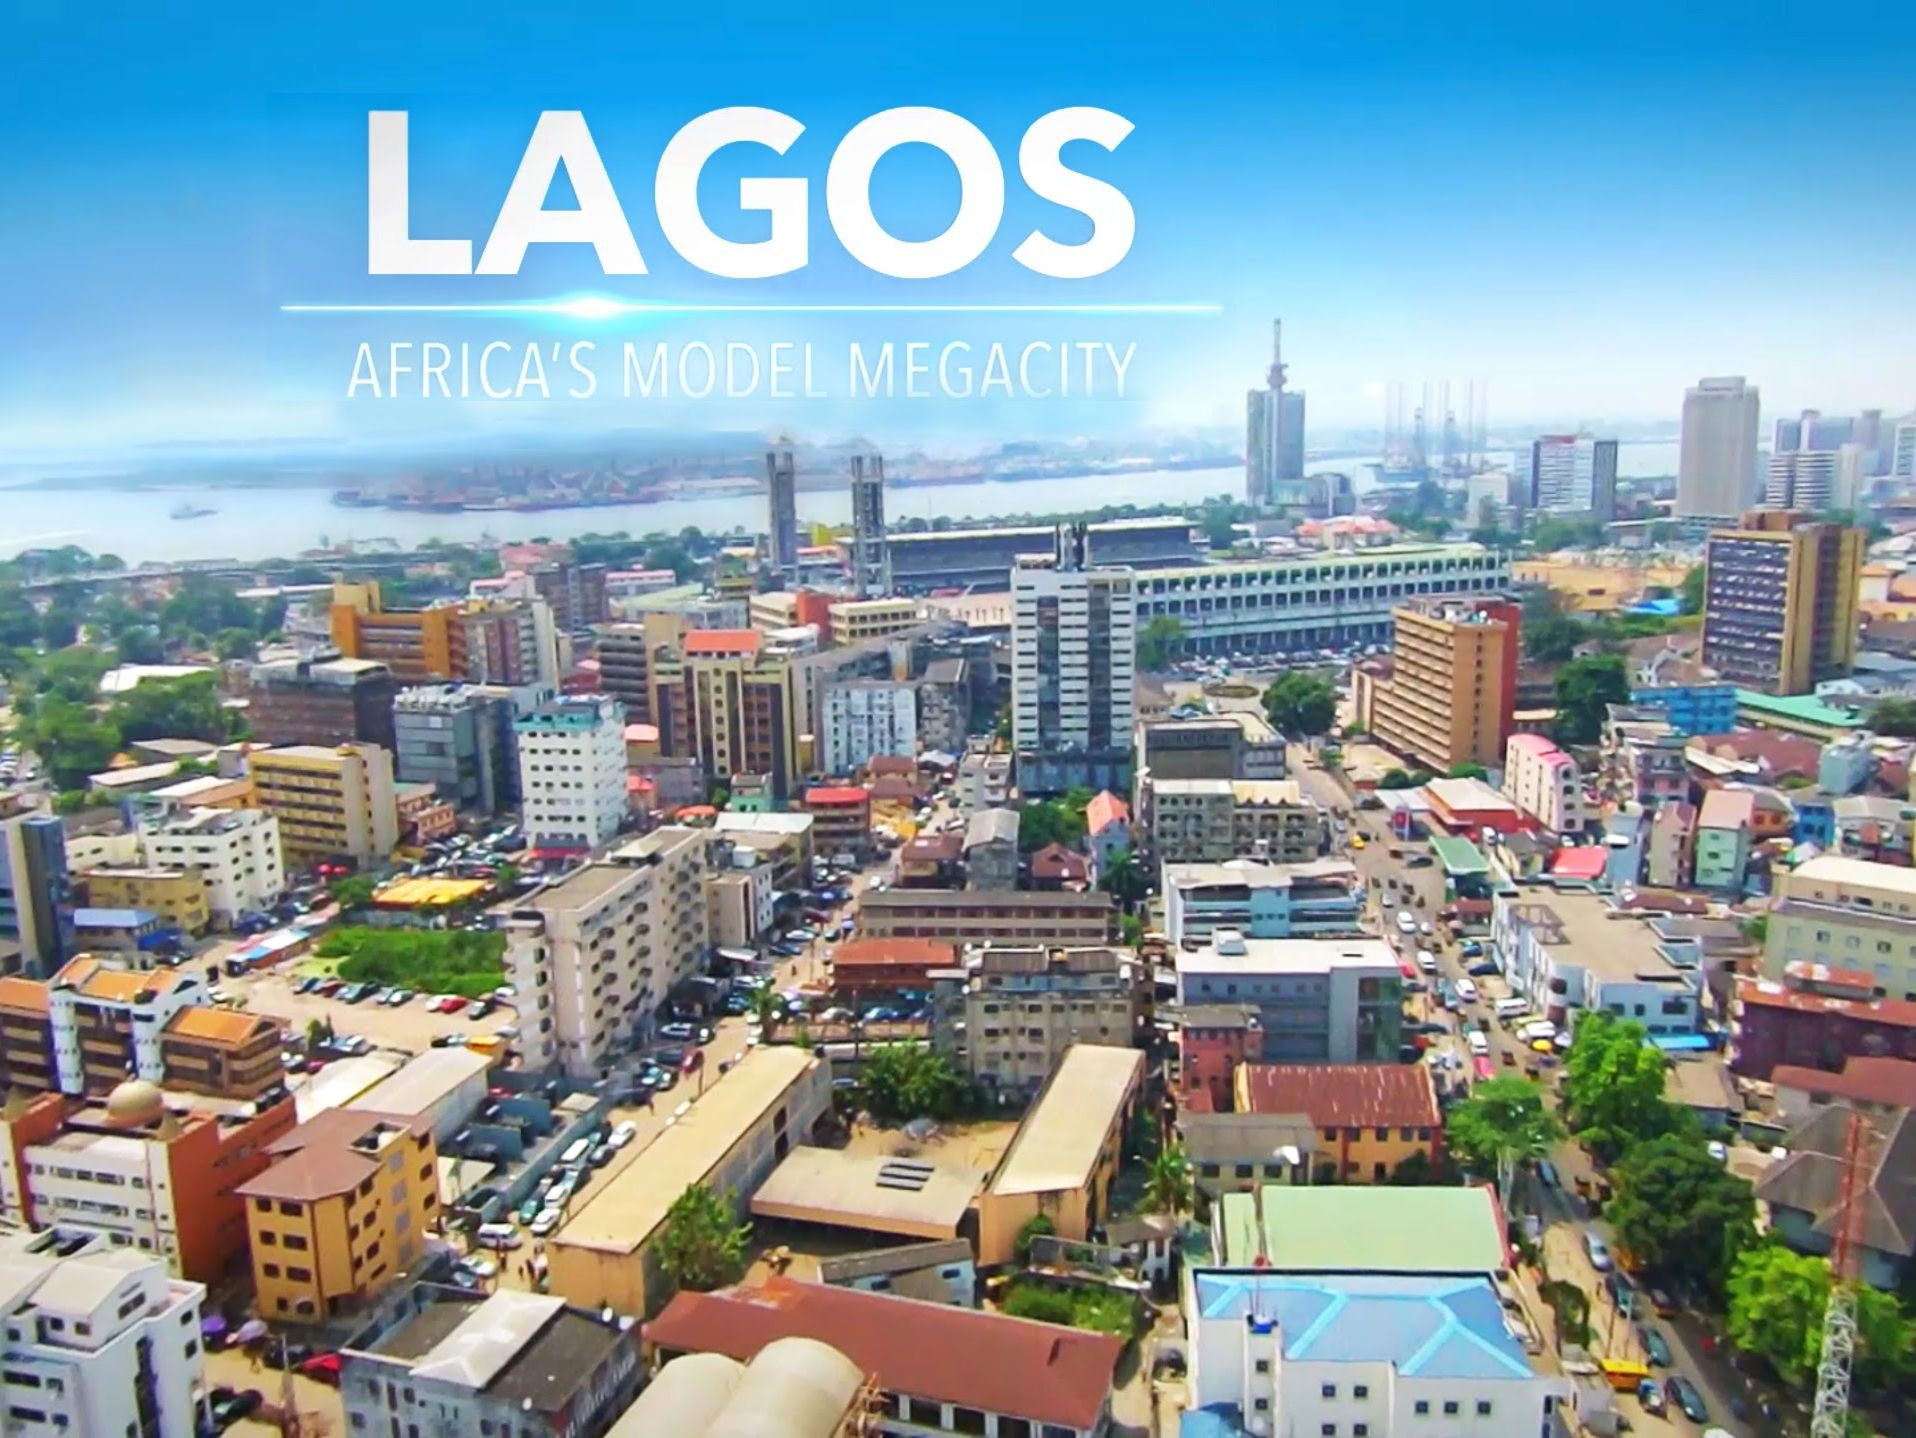 Urban Challenges in Lagos